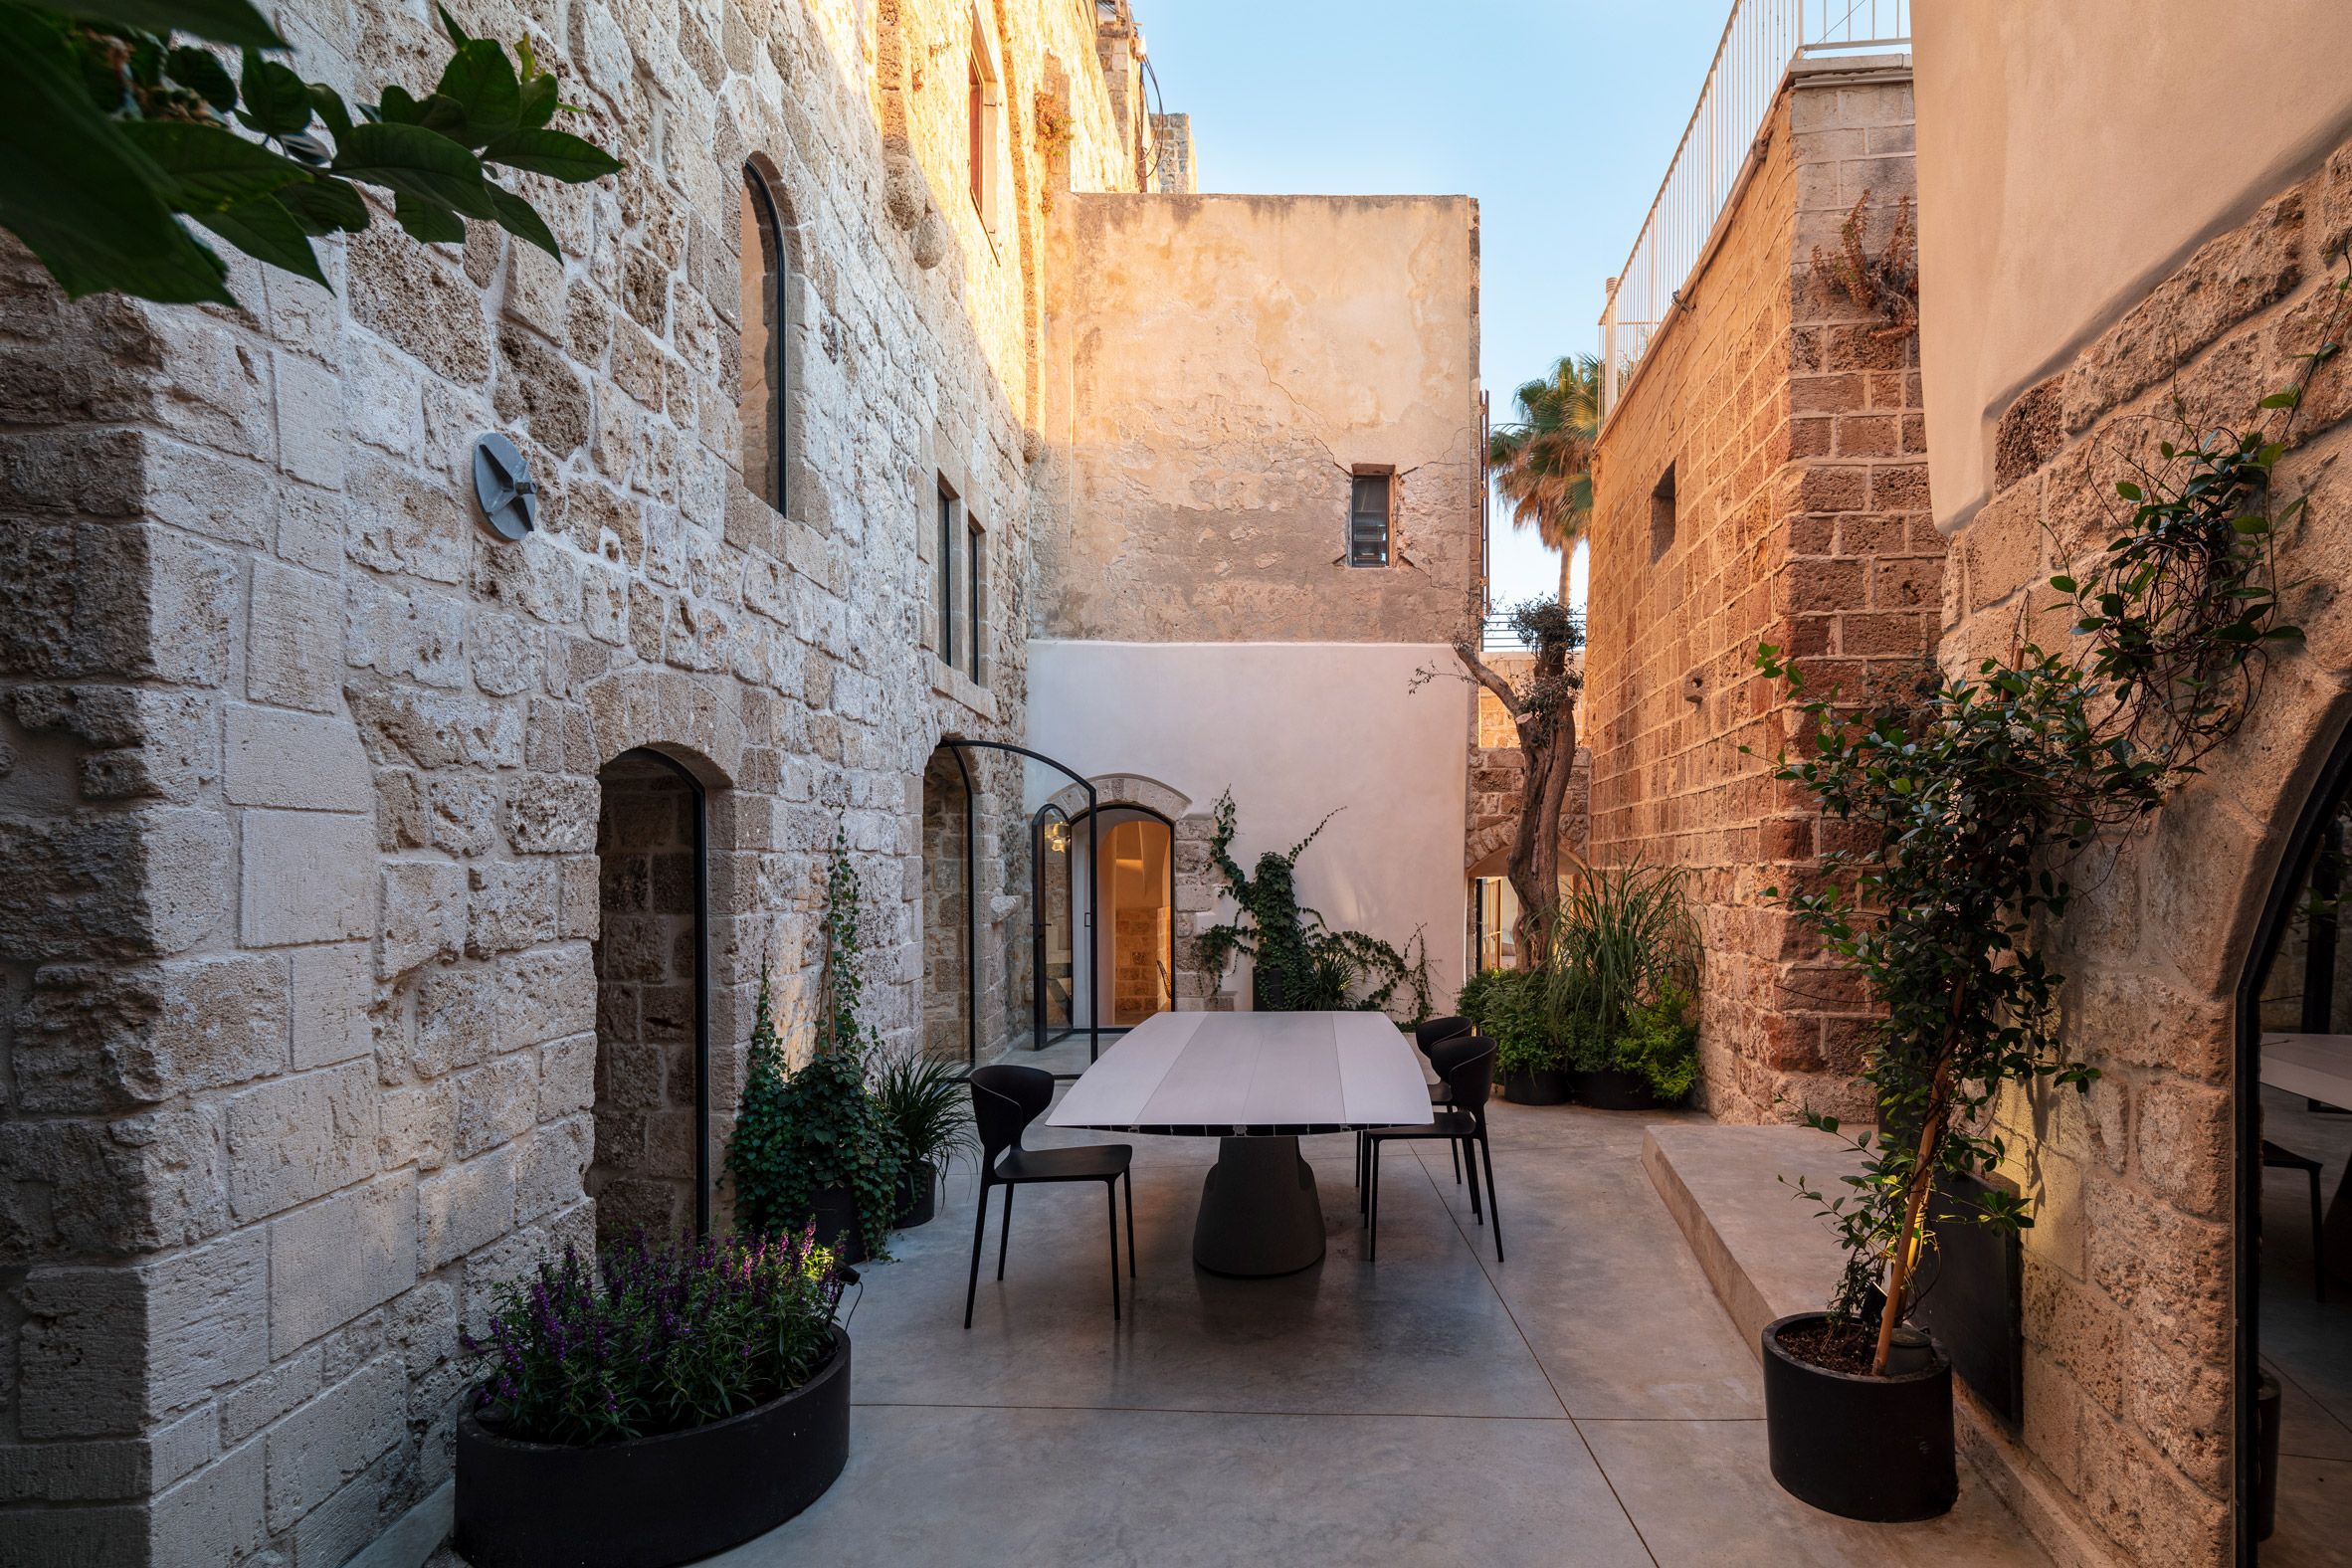 Courtyard dining spot in Old Jaffa House 4 by Pitsou Kedem